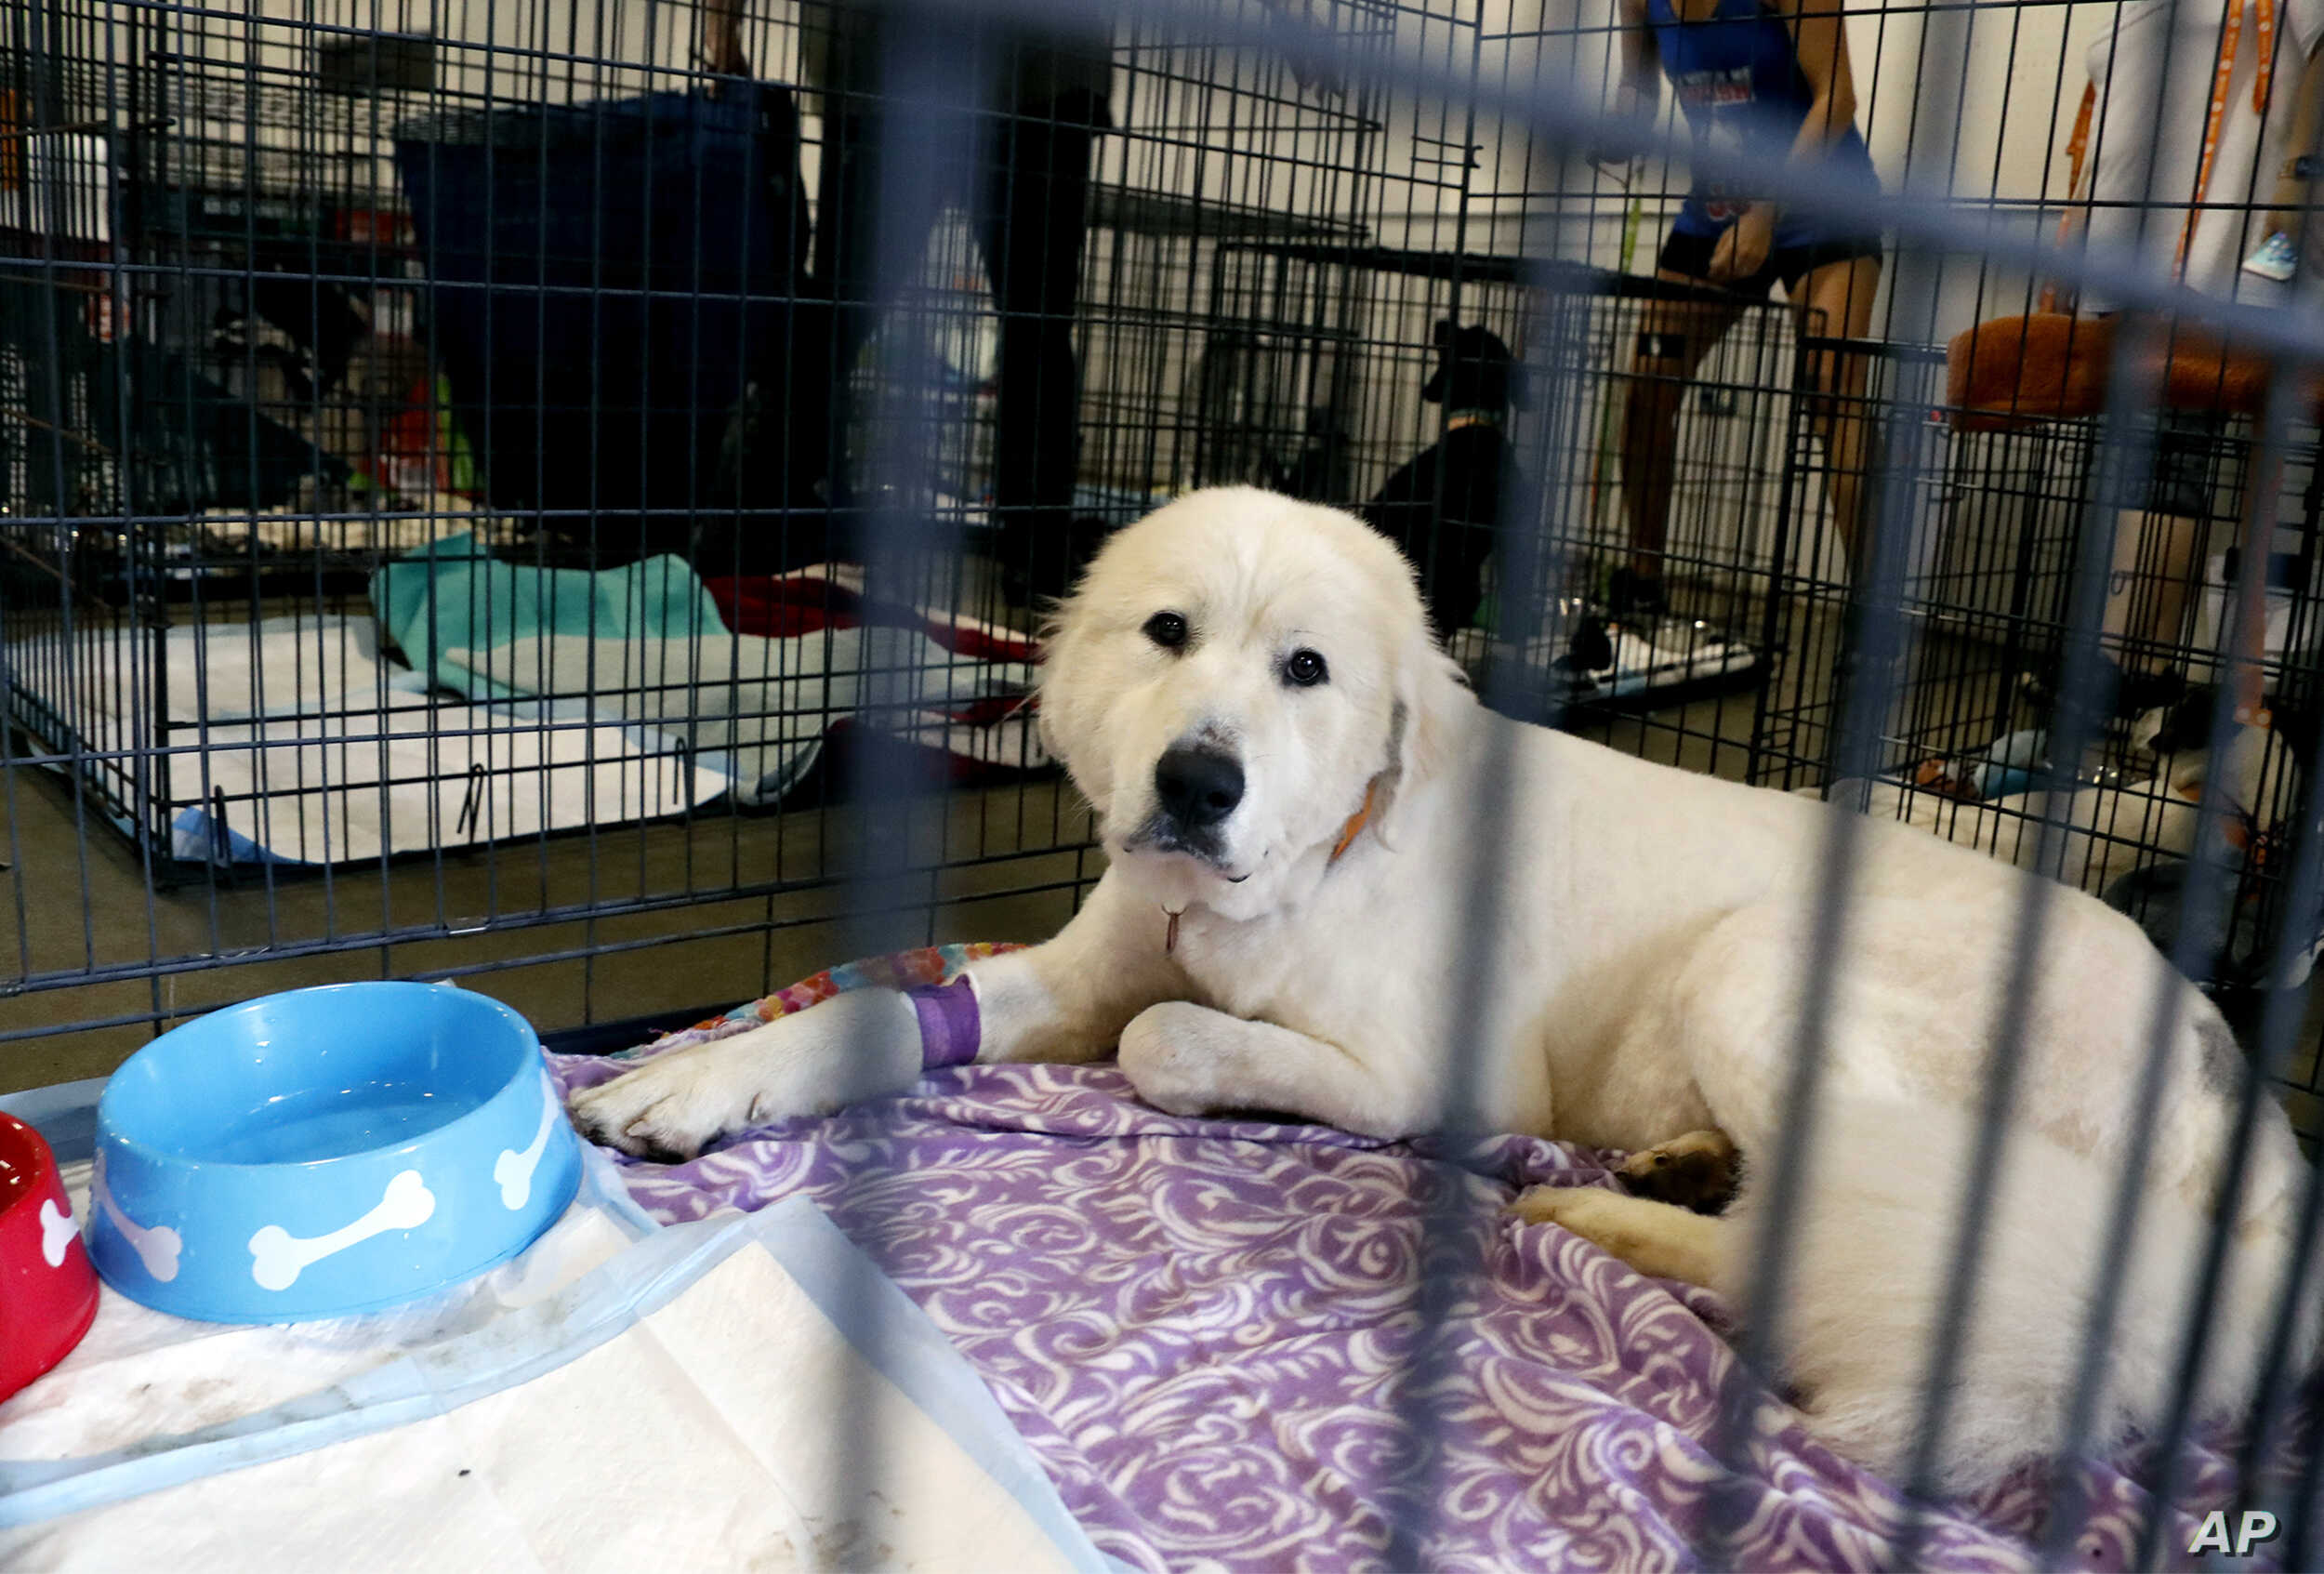 Pearl, a Great Pyrenees that was one of the animals rescued from an animal shelter in Carteret County, N.C., looks out from her cage in the Holshouser Building on the N.C. State Fairgrounds in Raleigh on Monday, Sept. 17, 2018.